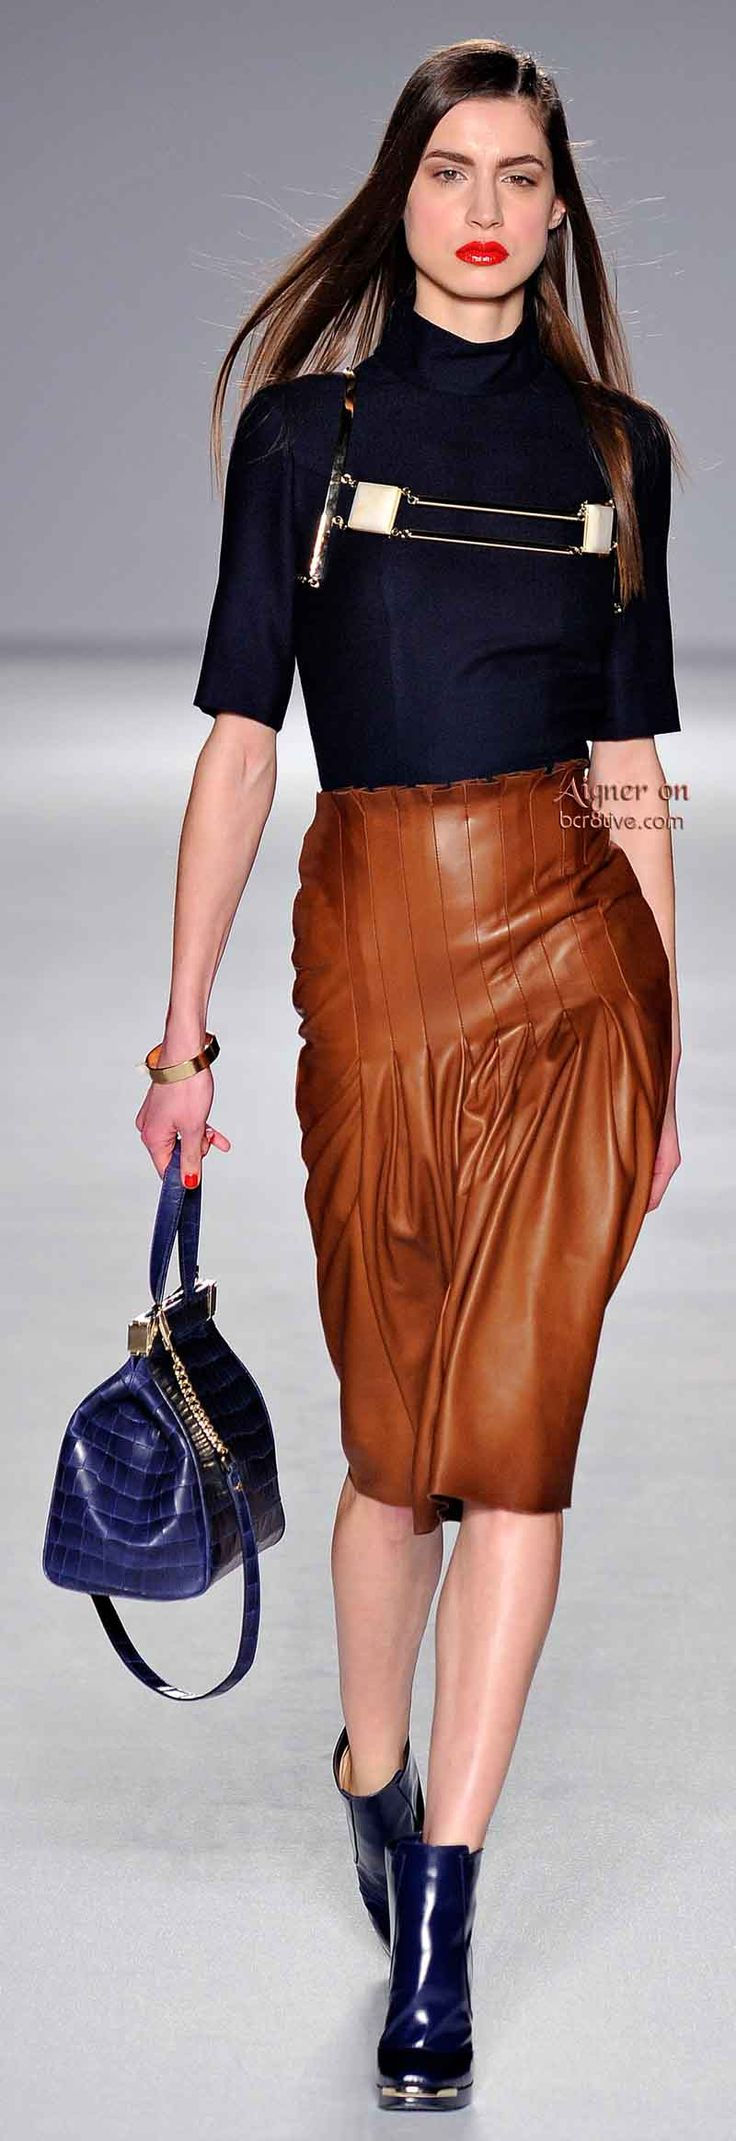 Best 25+ Brown leather skirt ideas on Pinterest | Tan leather skirt Outfits with pencil skirts ...